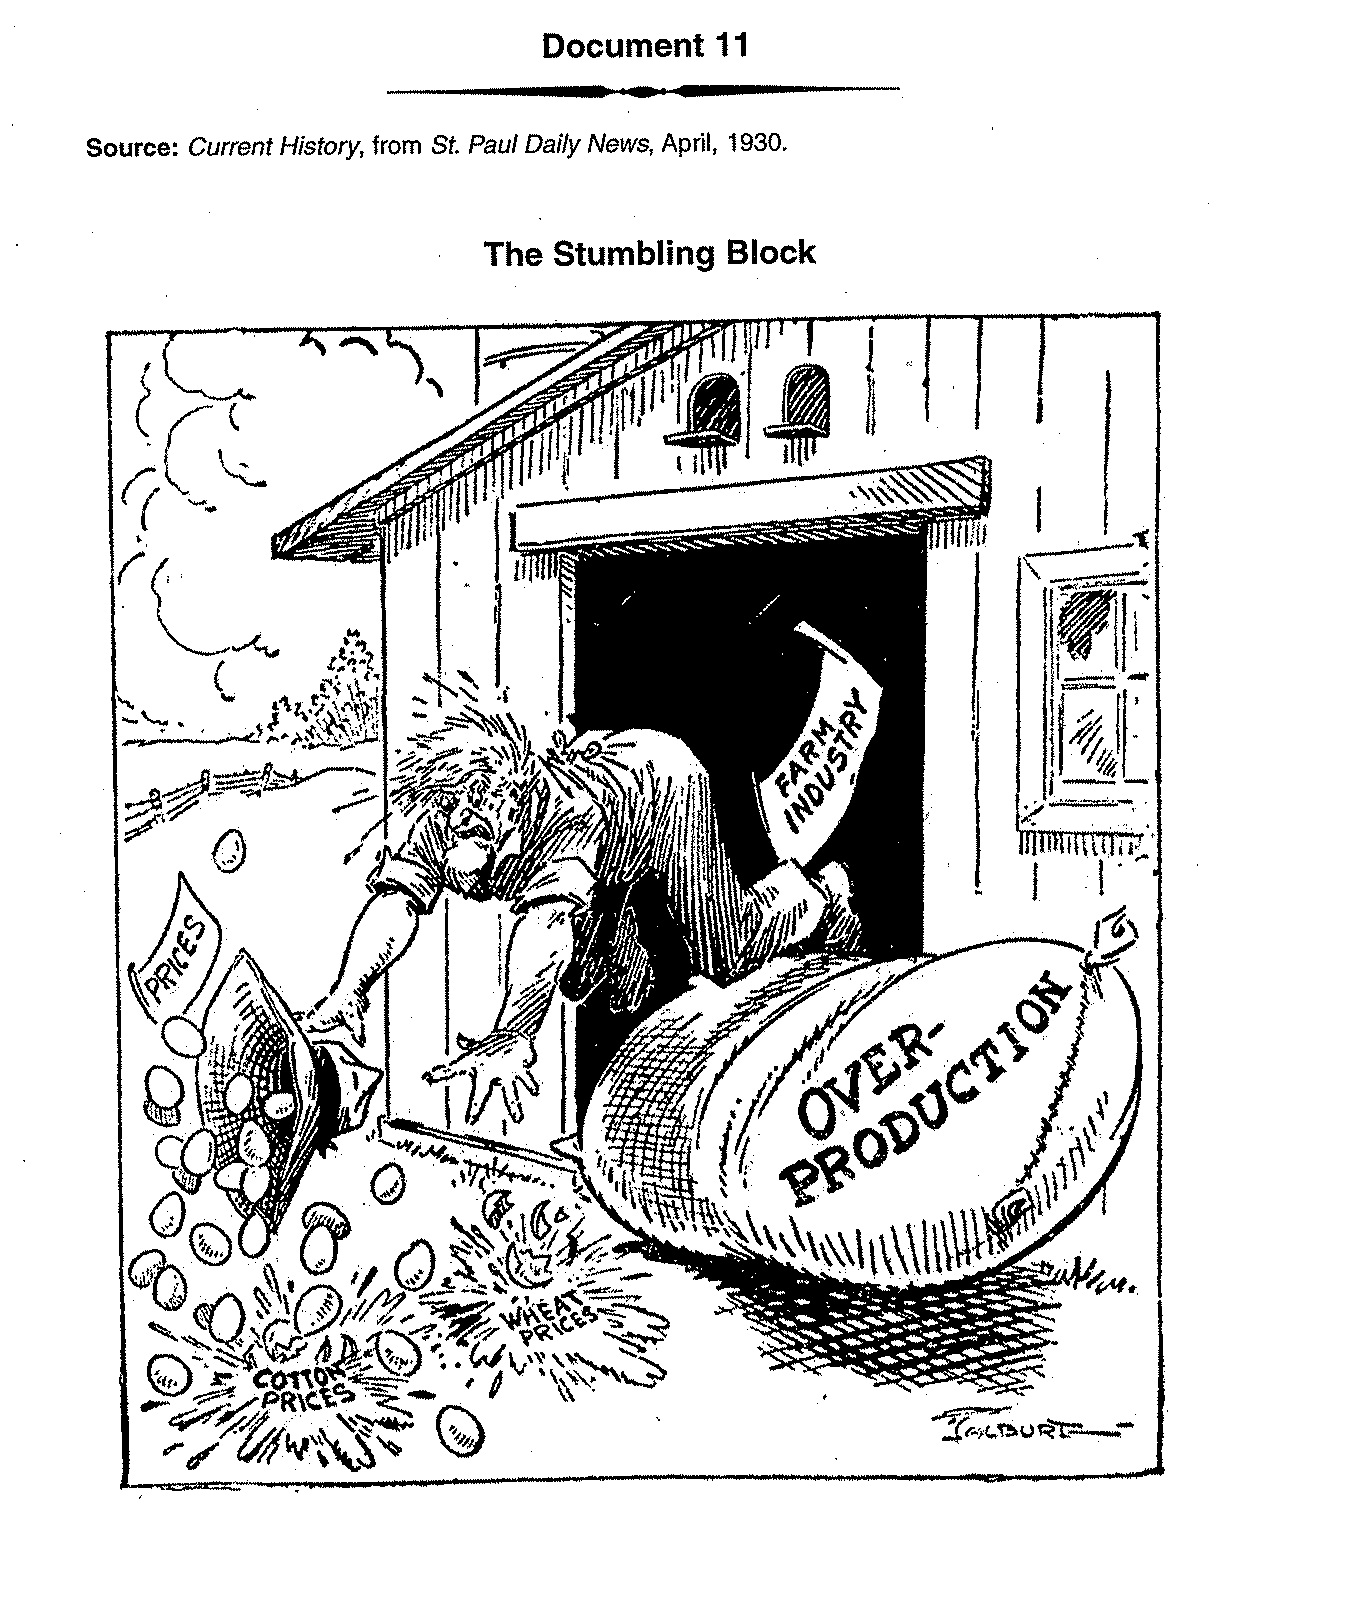 apush dbq great depression Essay on roosevelt and hoover dbq 1428 words 6 pages roosevelt and hoover dbq the great depression quickly altered america's view of liberalism and therefore, roosevelt can be considered a.